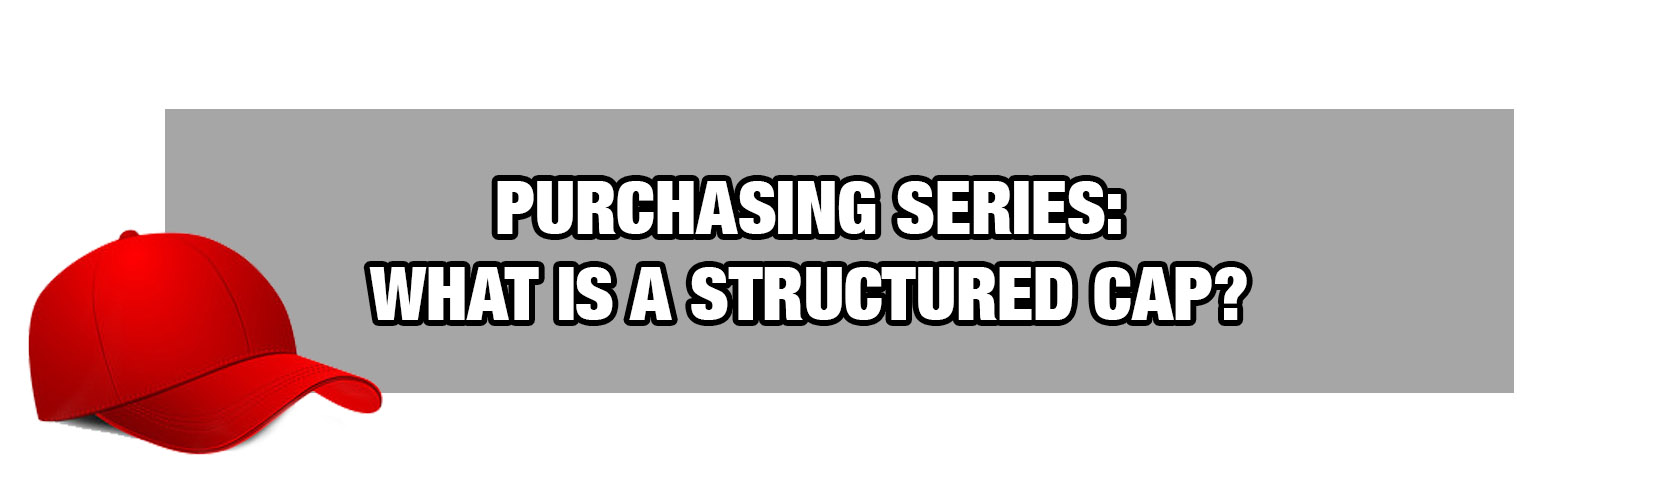 Purchasing Series: What Is a Structured Cap?